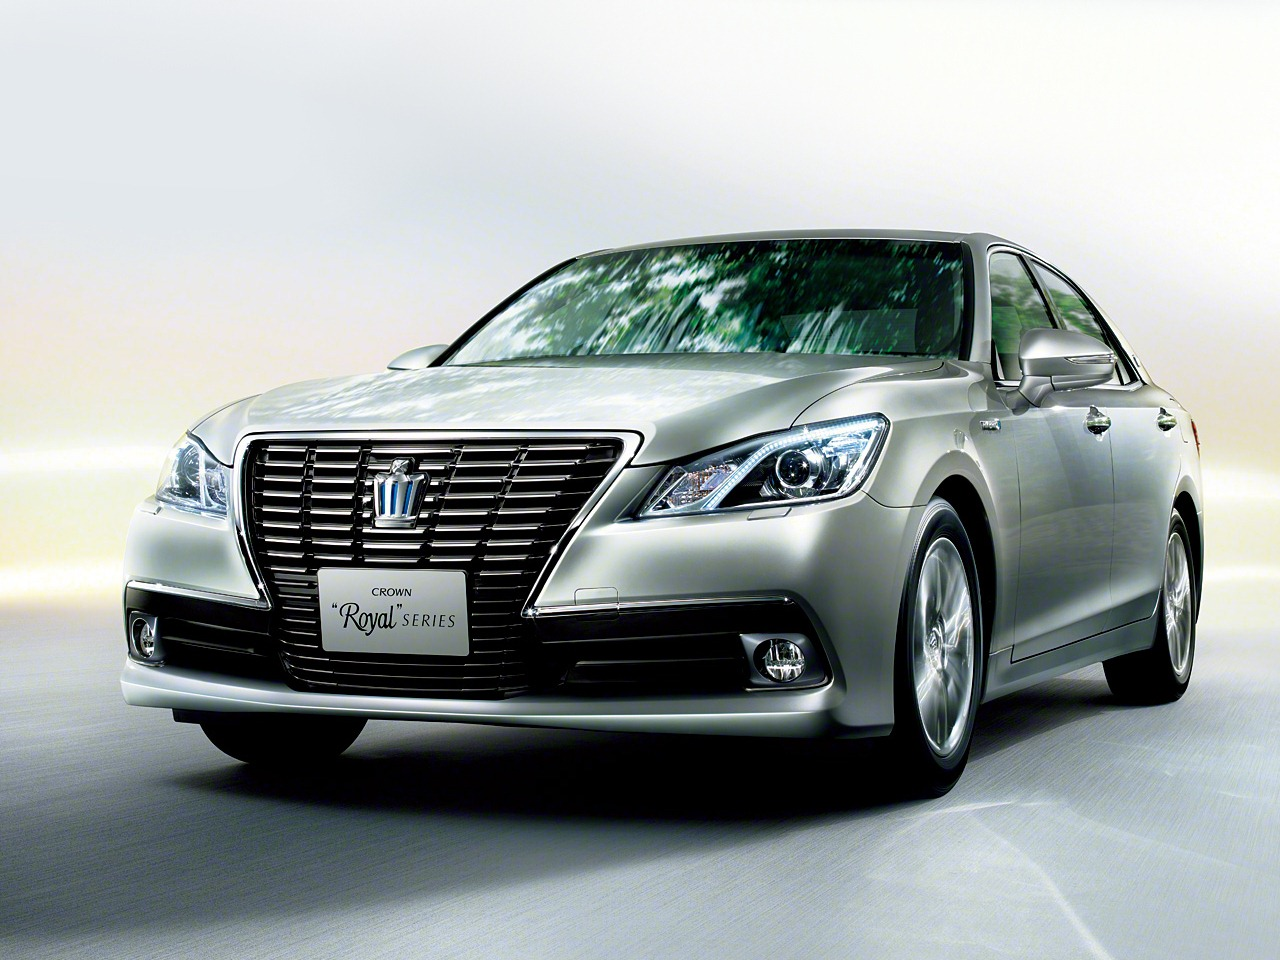 2013 Toyota Crown Royal And Athlete Revealed Autoevolution